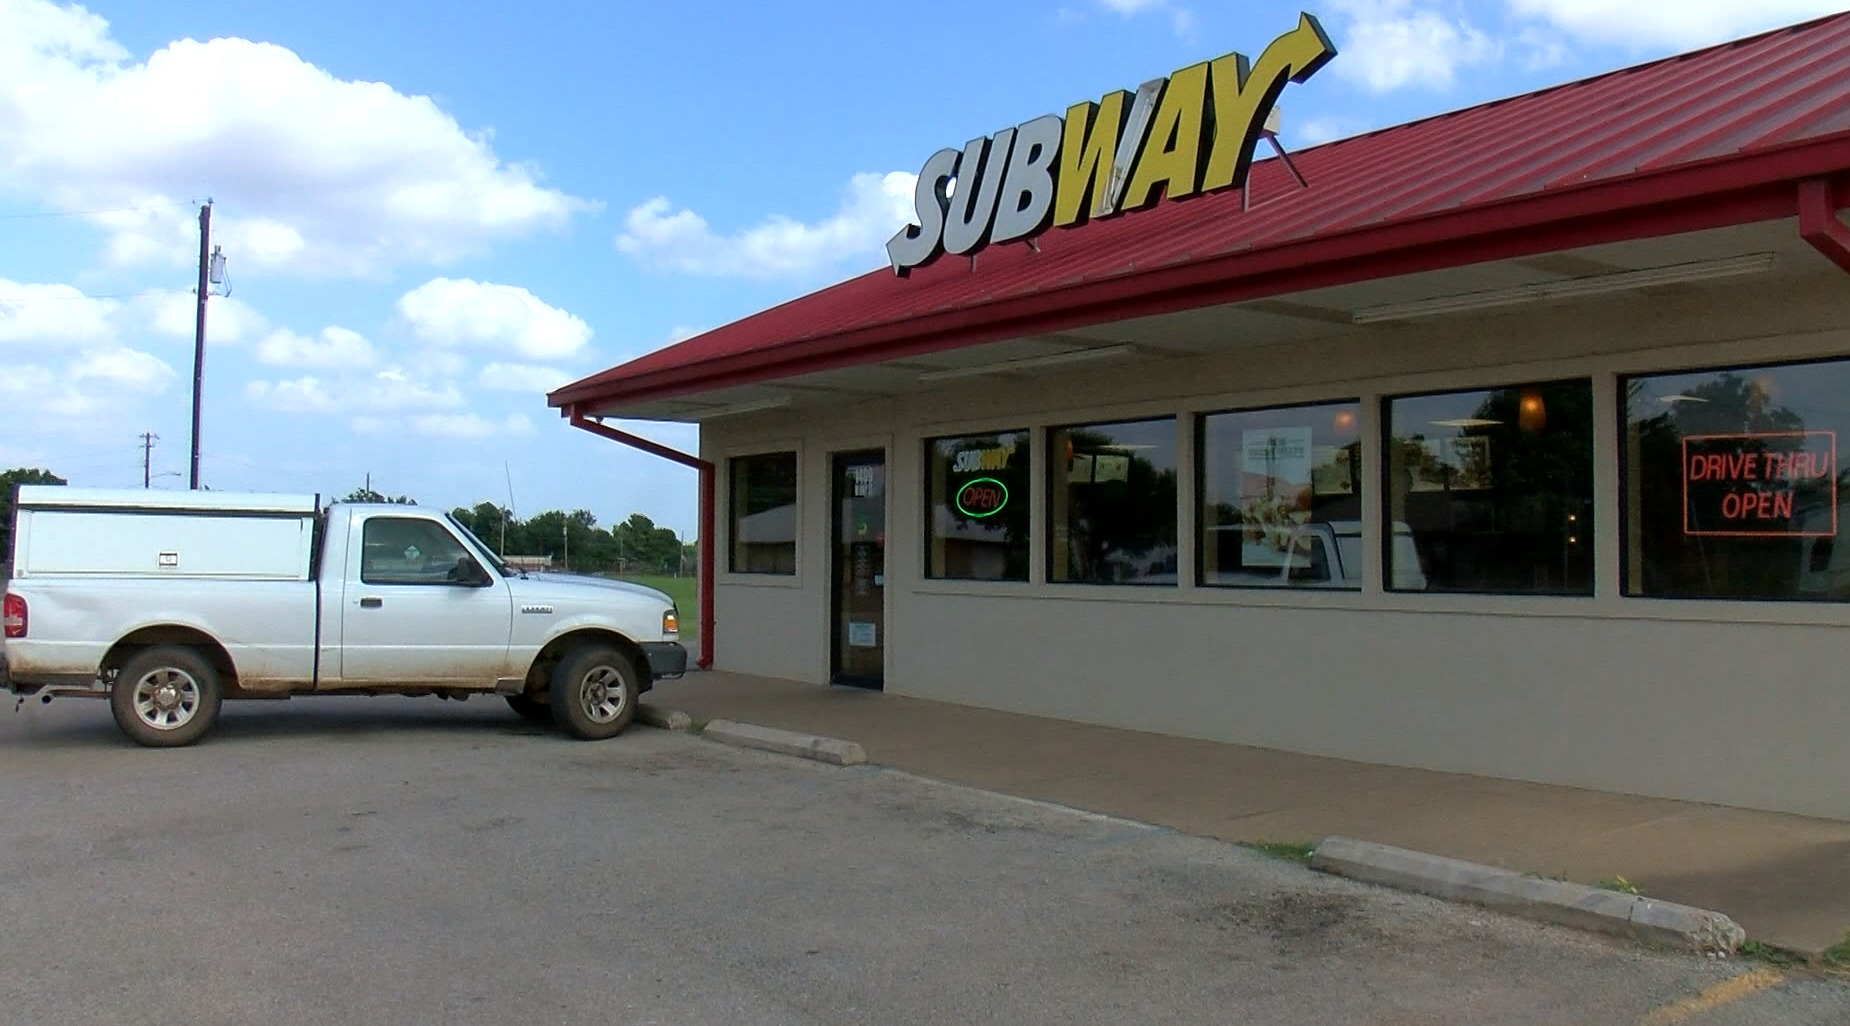 Woman Finds $21K At Local Subway Restaurant, Contacts Police